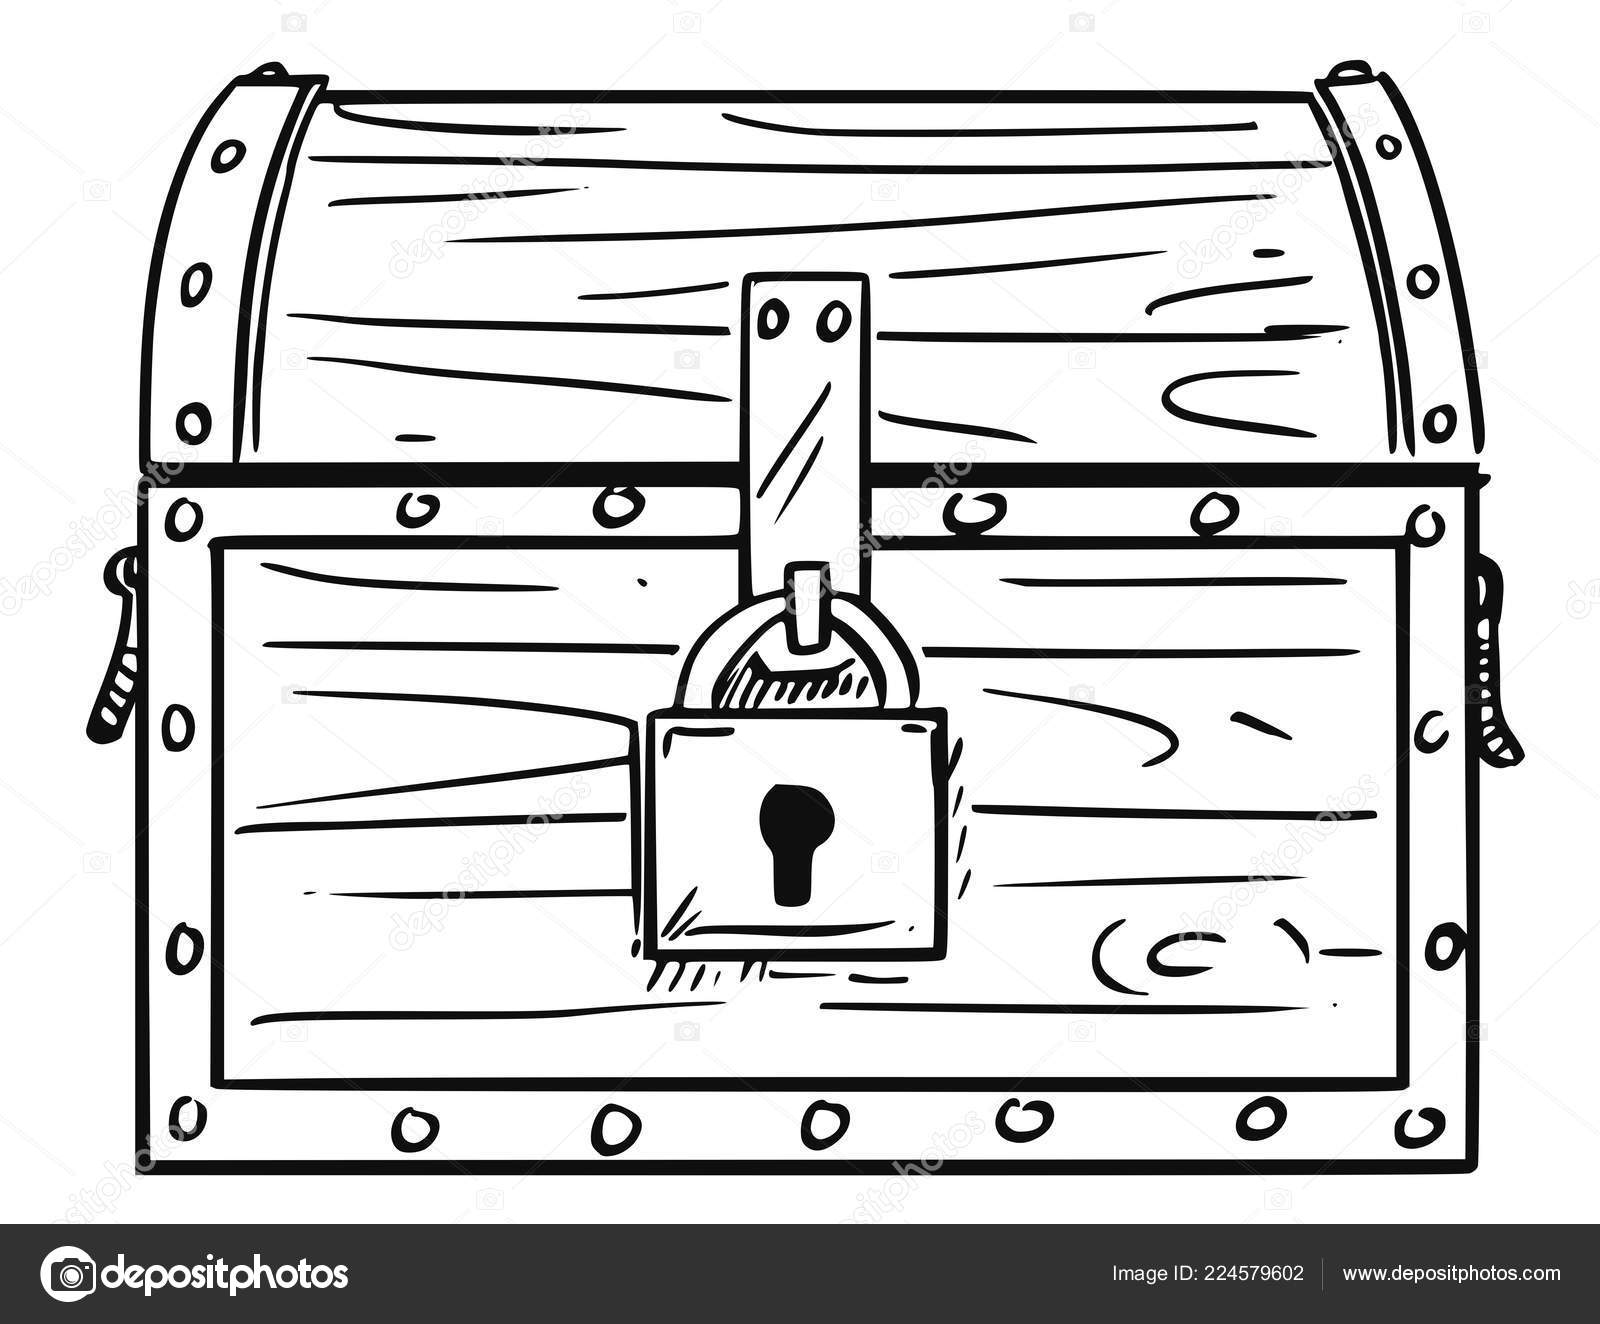 How To Draw A Treasure Box Cartoon Drawing Of Locked Antique Wooden Treasure Chest Box Stock Vector C Ursus Zdeneksasek Com 224579602